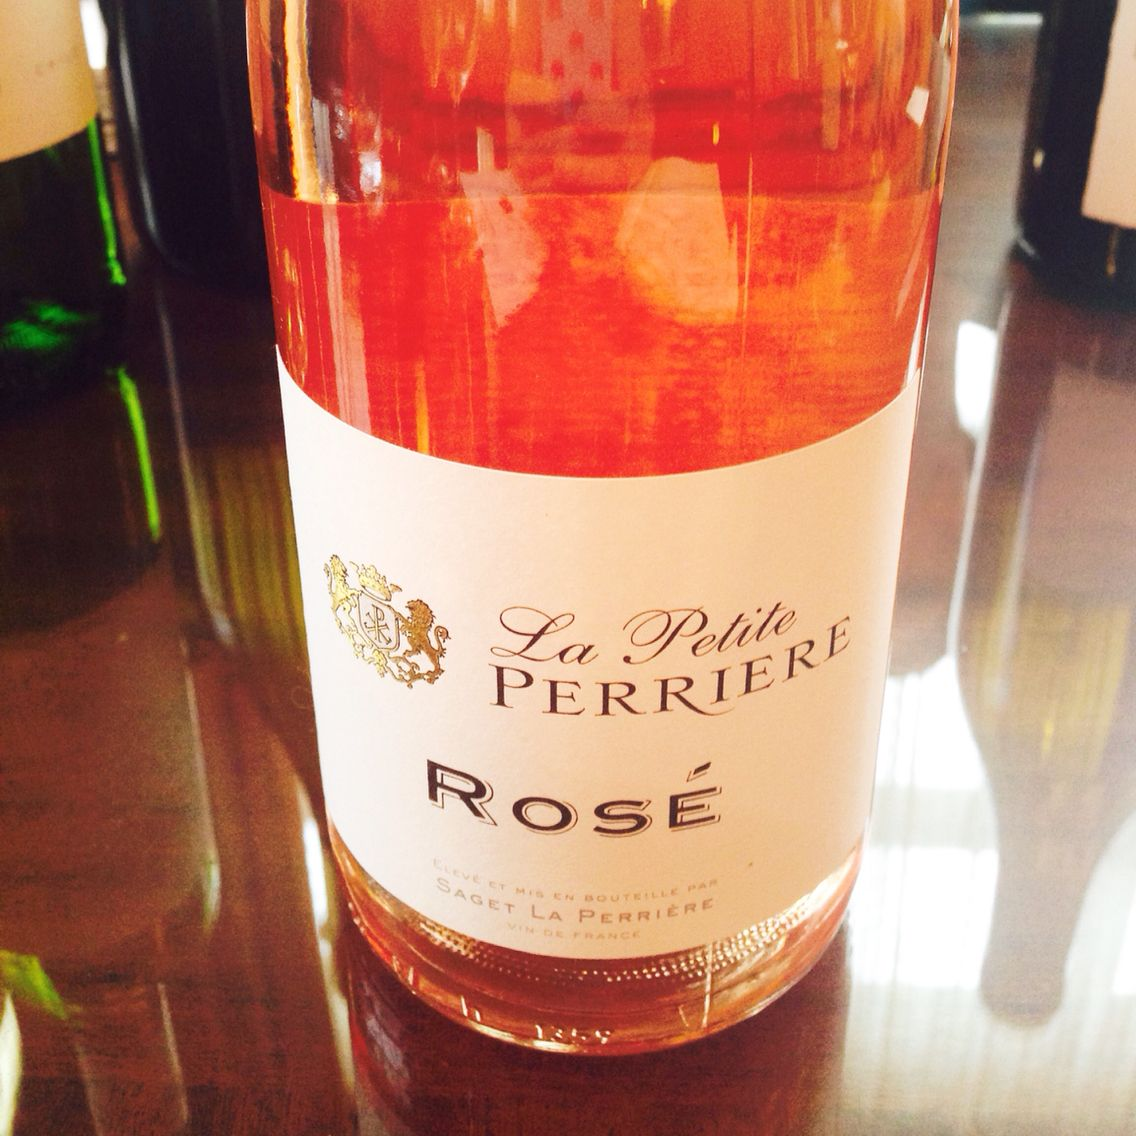 2014 La Petite Perriere Rose Fresh Watermelon Brite Cherry Kisses And Fields Of Strawberries All In One Sip Yummo Fresh Watermelon Wine Bottle Cherry Kiss